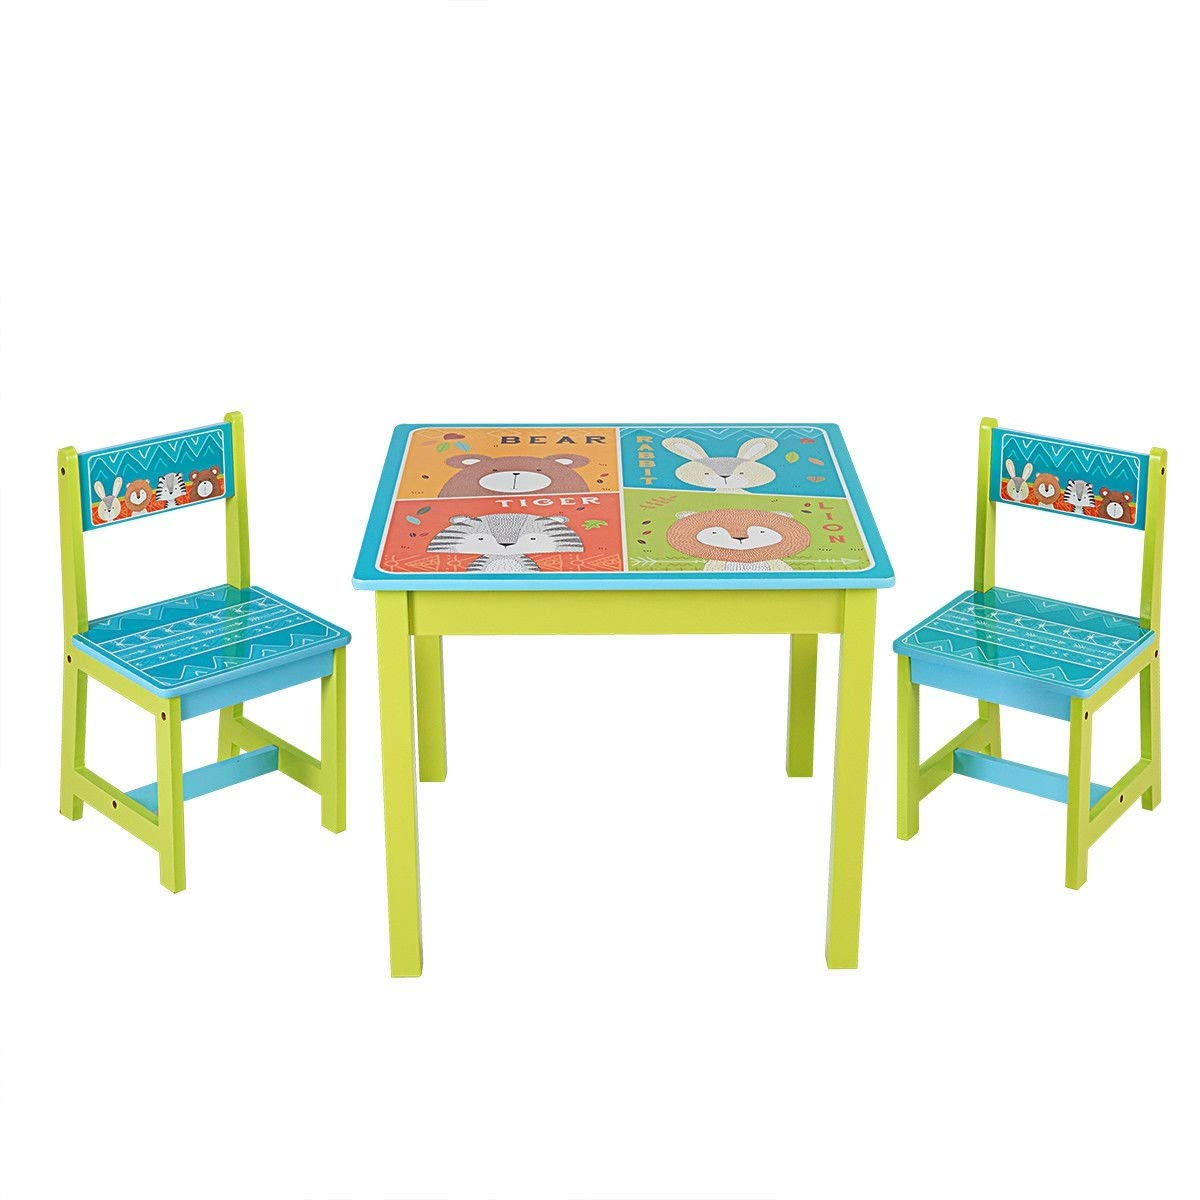 Amazon com usa best seller kids table and chairs set for toddler baby gift desk furniture with cartoon pattern environmental friendly 3 kitchen dining